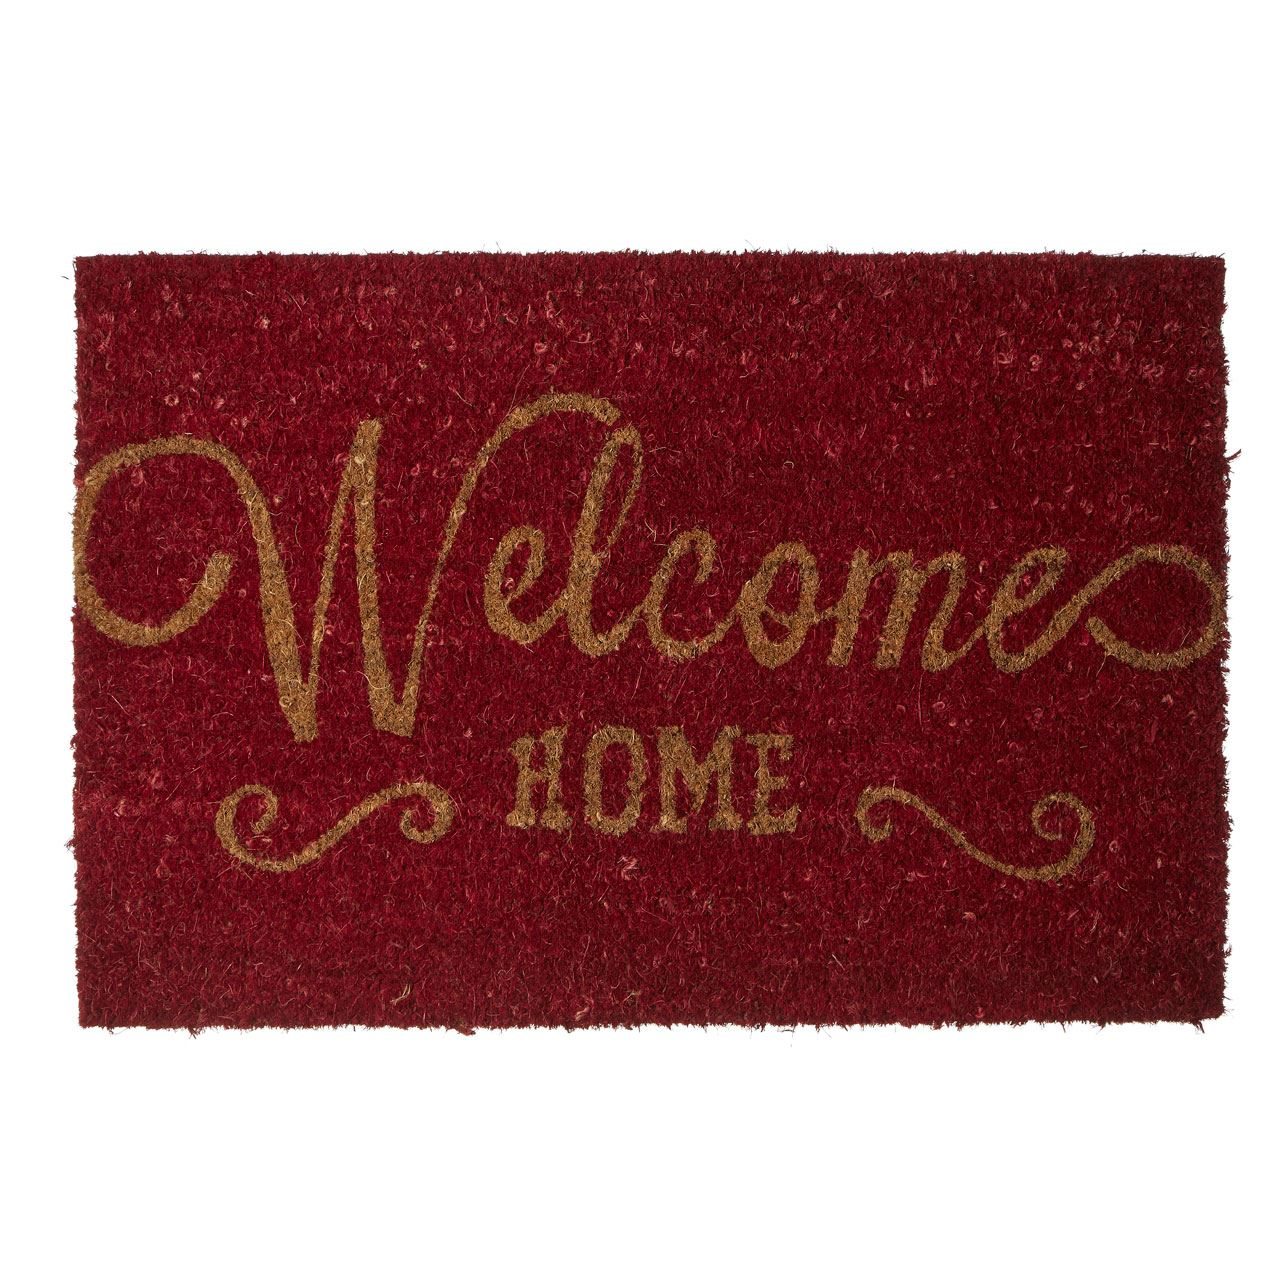 Welcome Home Doormat, Poly Vinyl Chloride Backed Coir